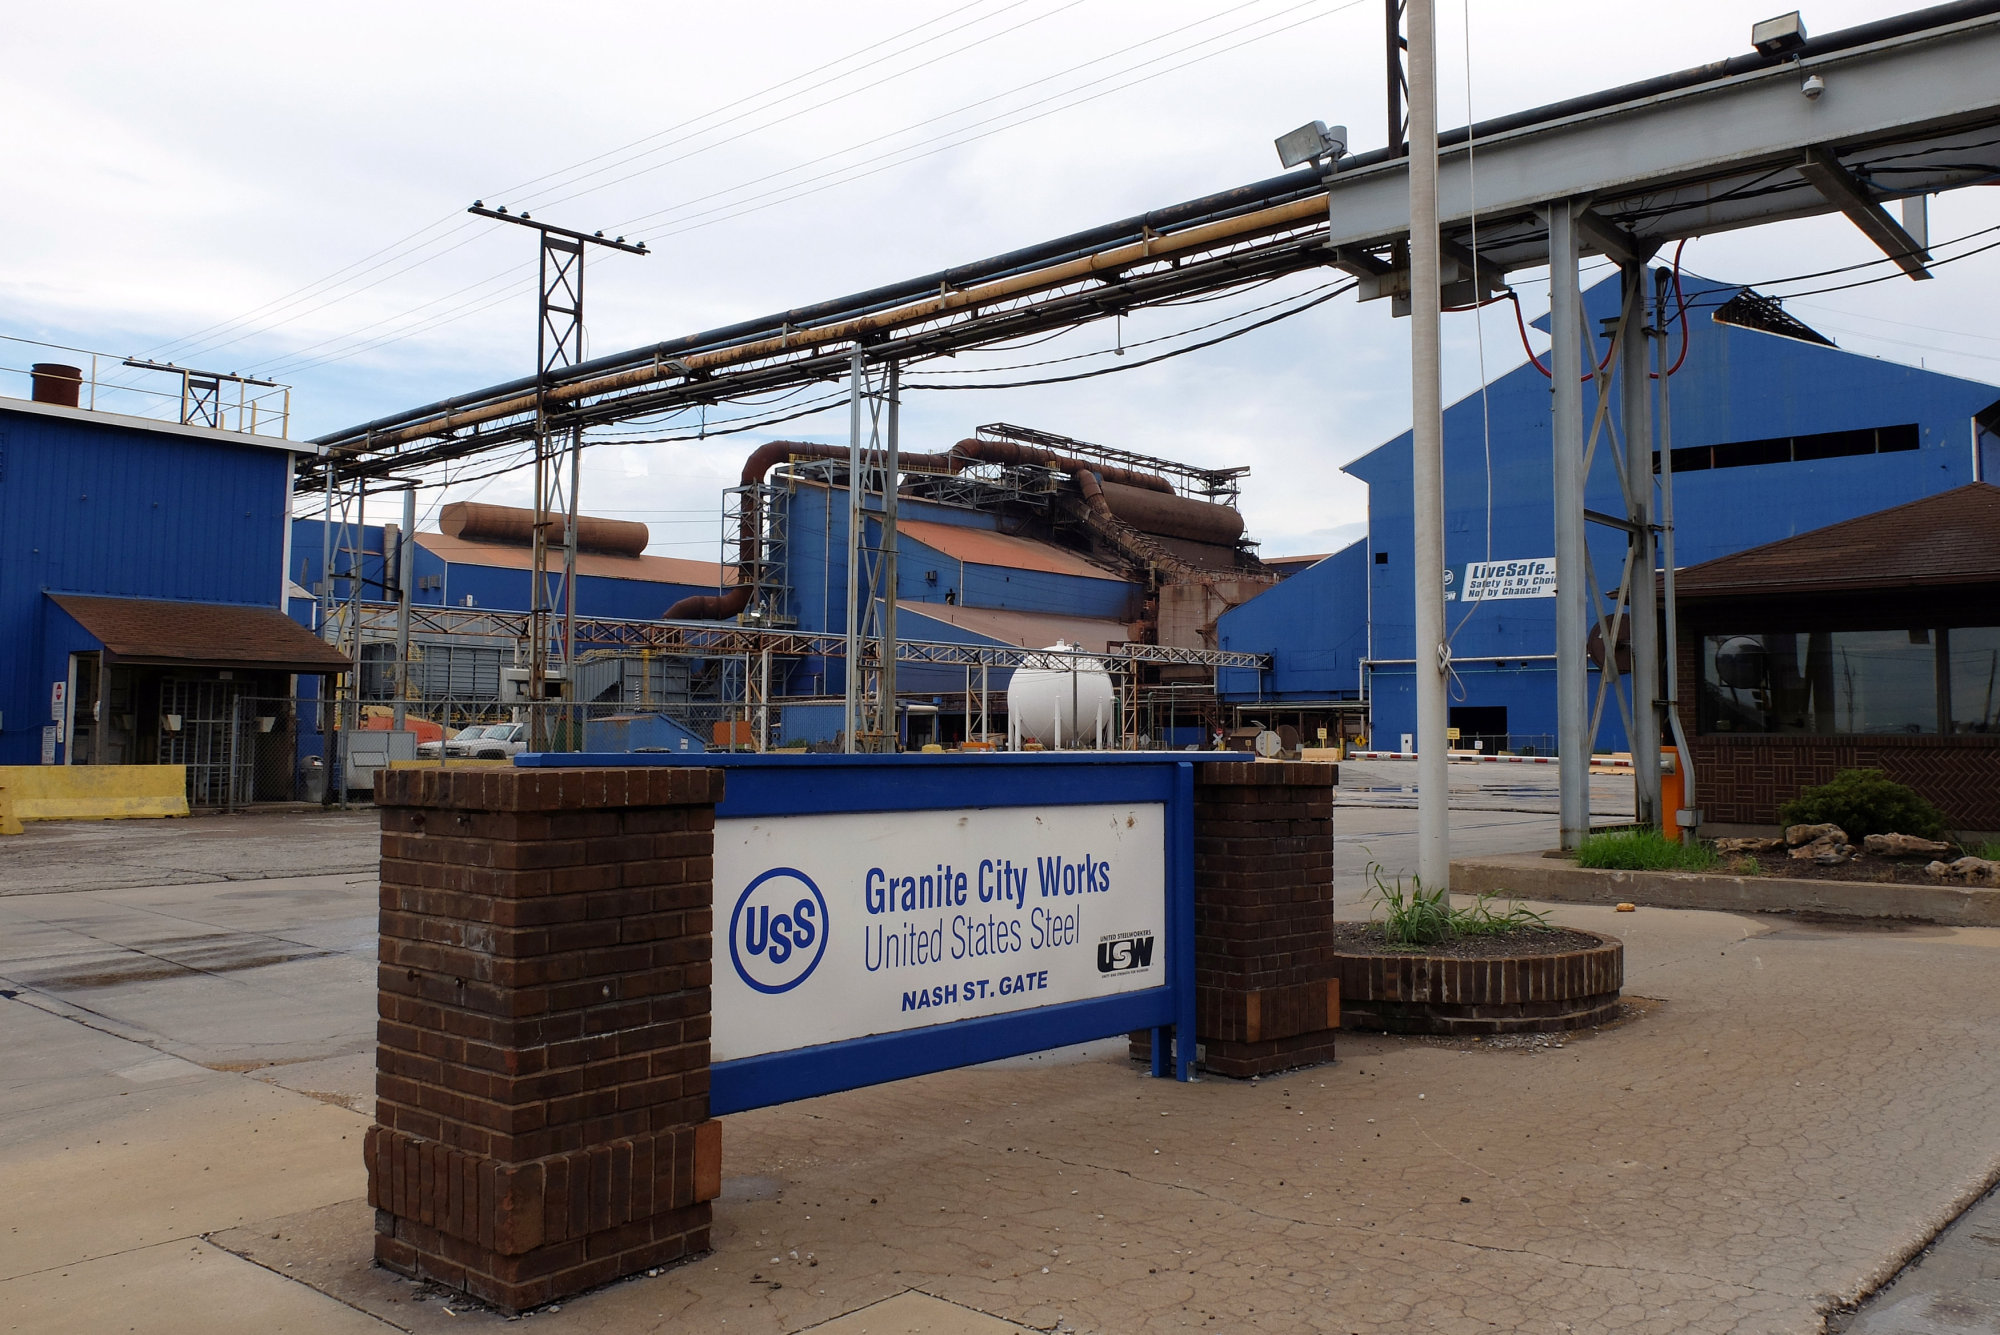 The entrance to idled U.S. Steel Corp. steelmaking operations in Granite City, Illinois, is seen on July 5. U.S. President Donald Trump is considering imposing import restrictions based on a national security review of the steel industry. | REUTERS